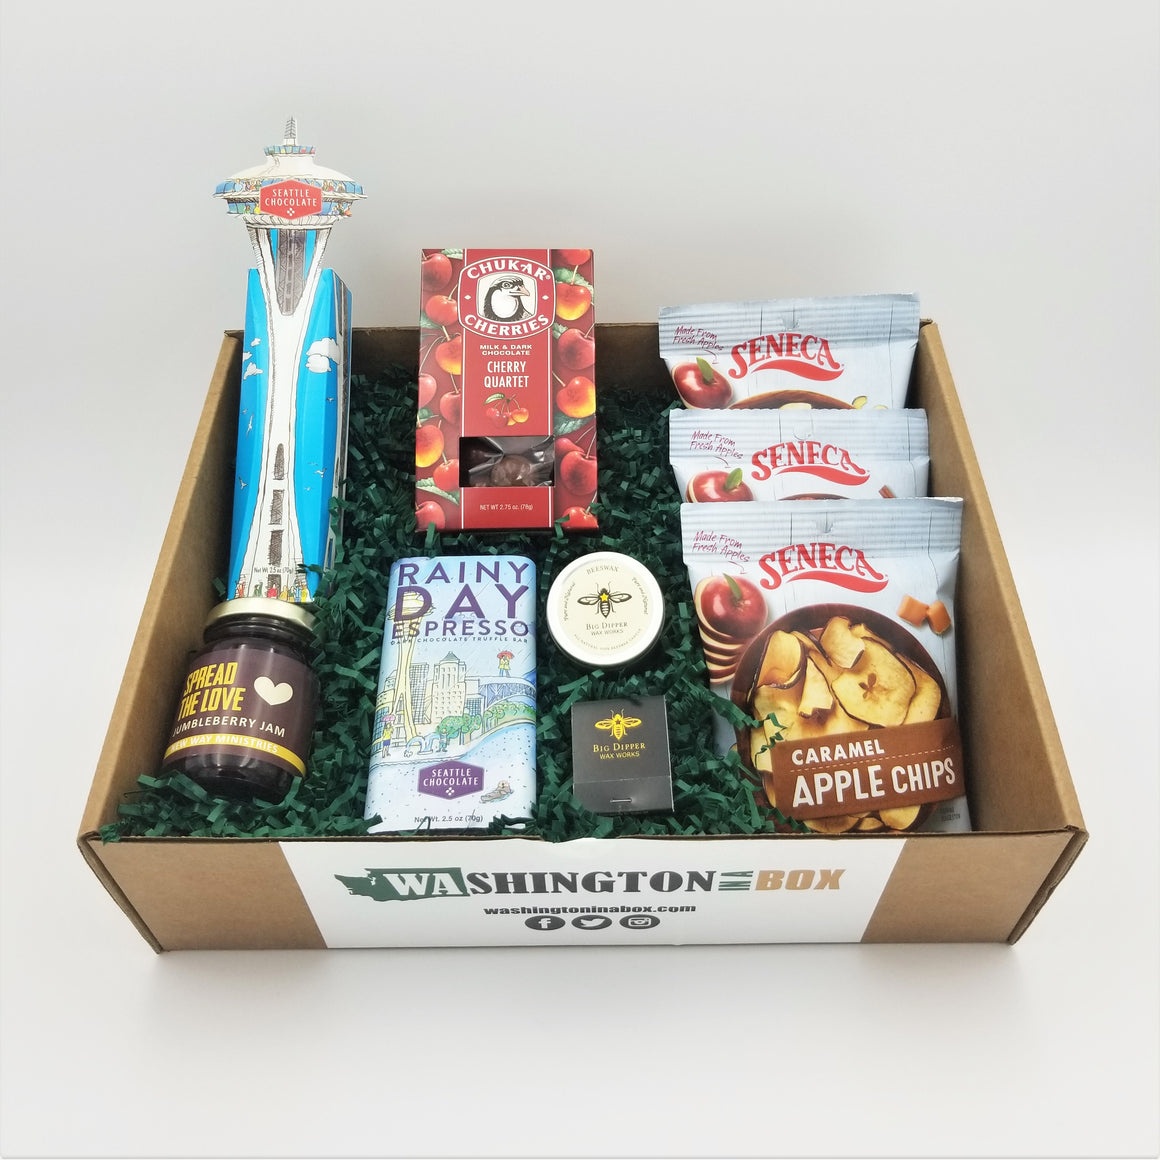 Washington Gift Box Gift Basket Made in Washington Gifts Mothers Day Gift